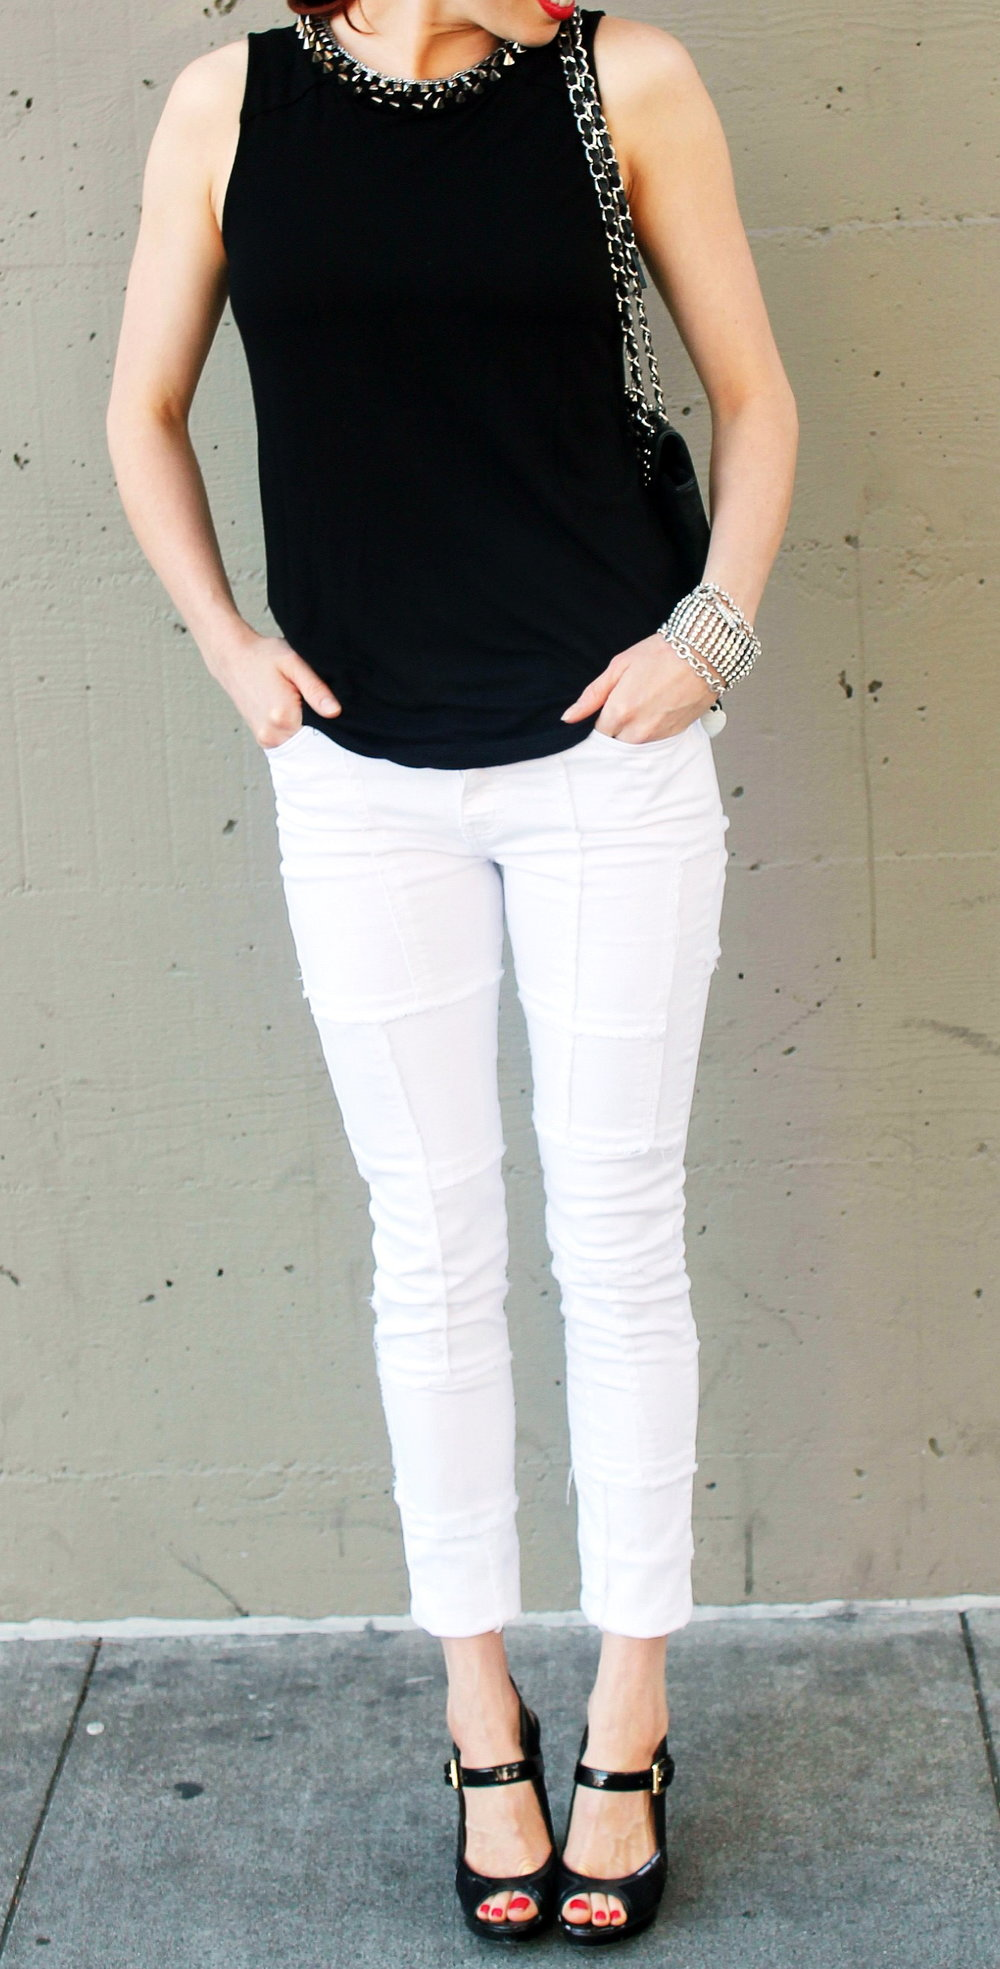 White-Patchwork-Jeans-Wash.jpg